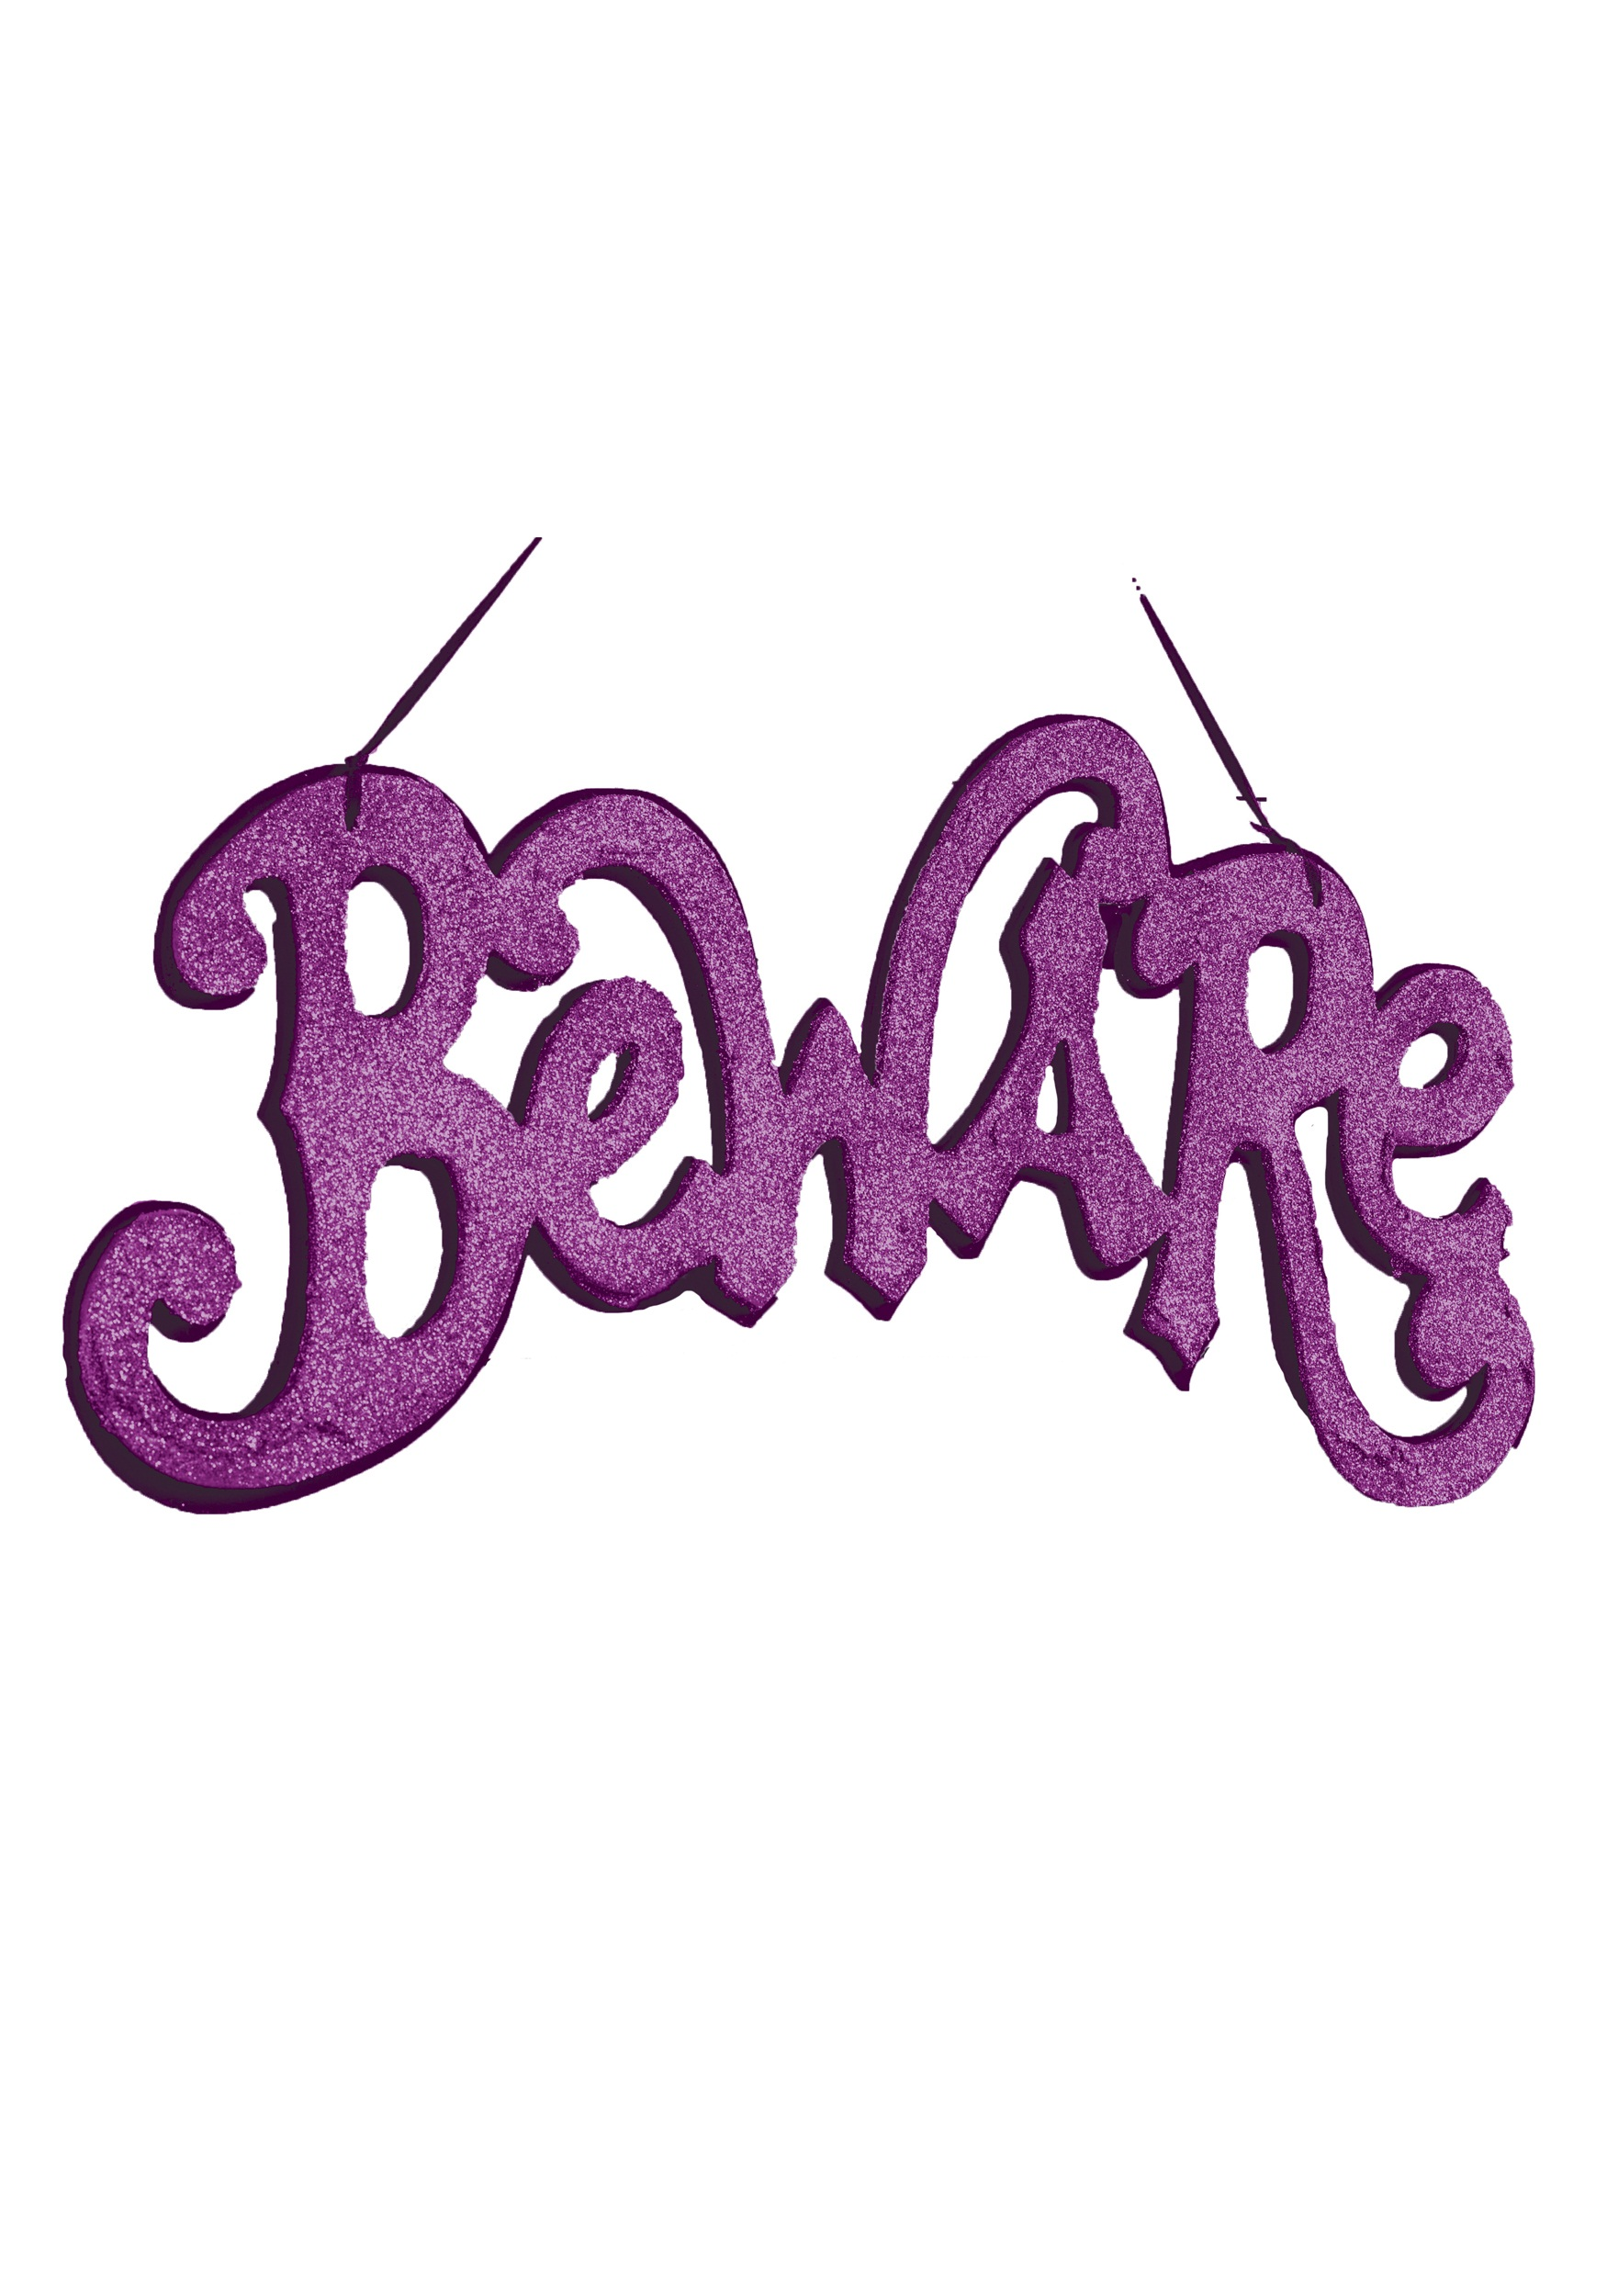 Purple Beware Cutout Sign